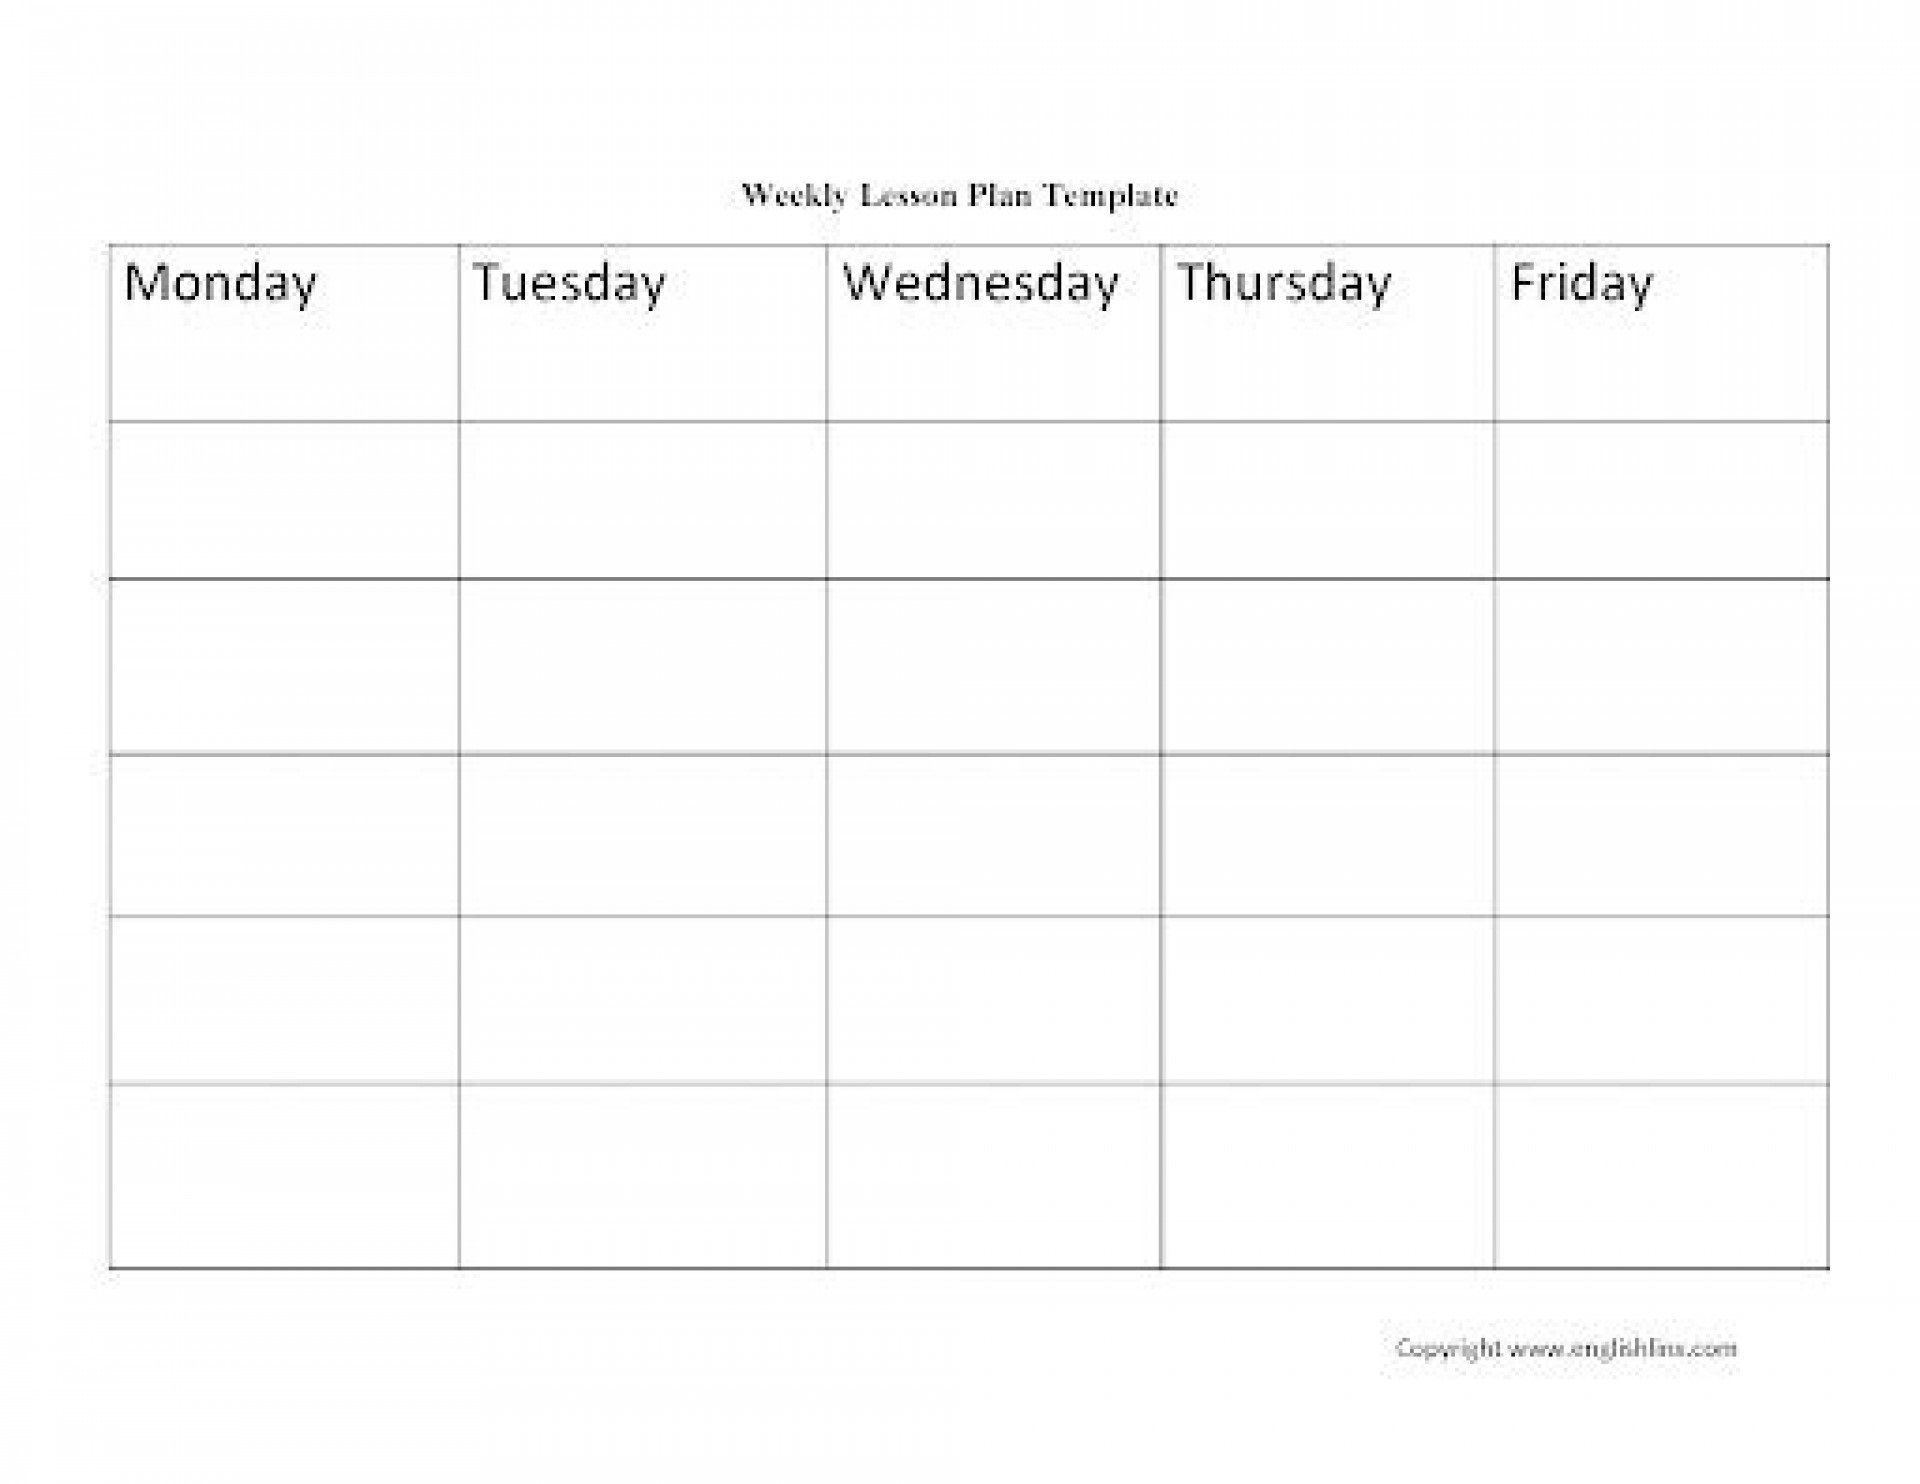 002 Formidable Weekly Lesson Plan Template Google Doc Concept  Docs 5e SimpleFull